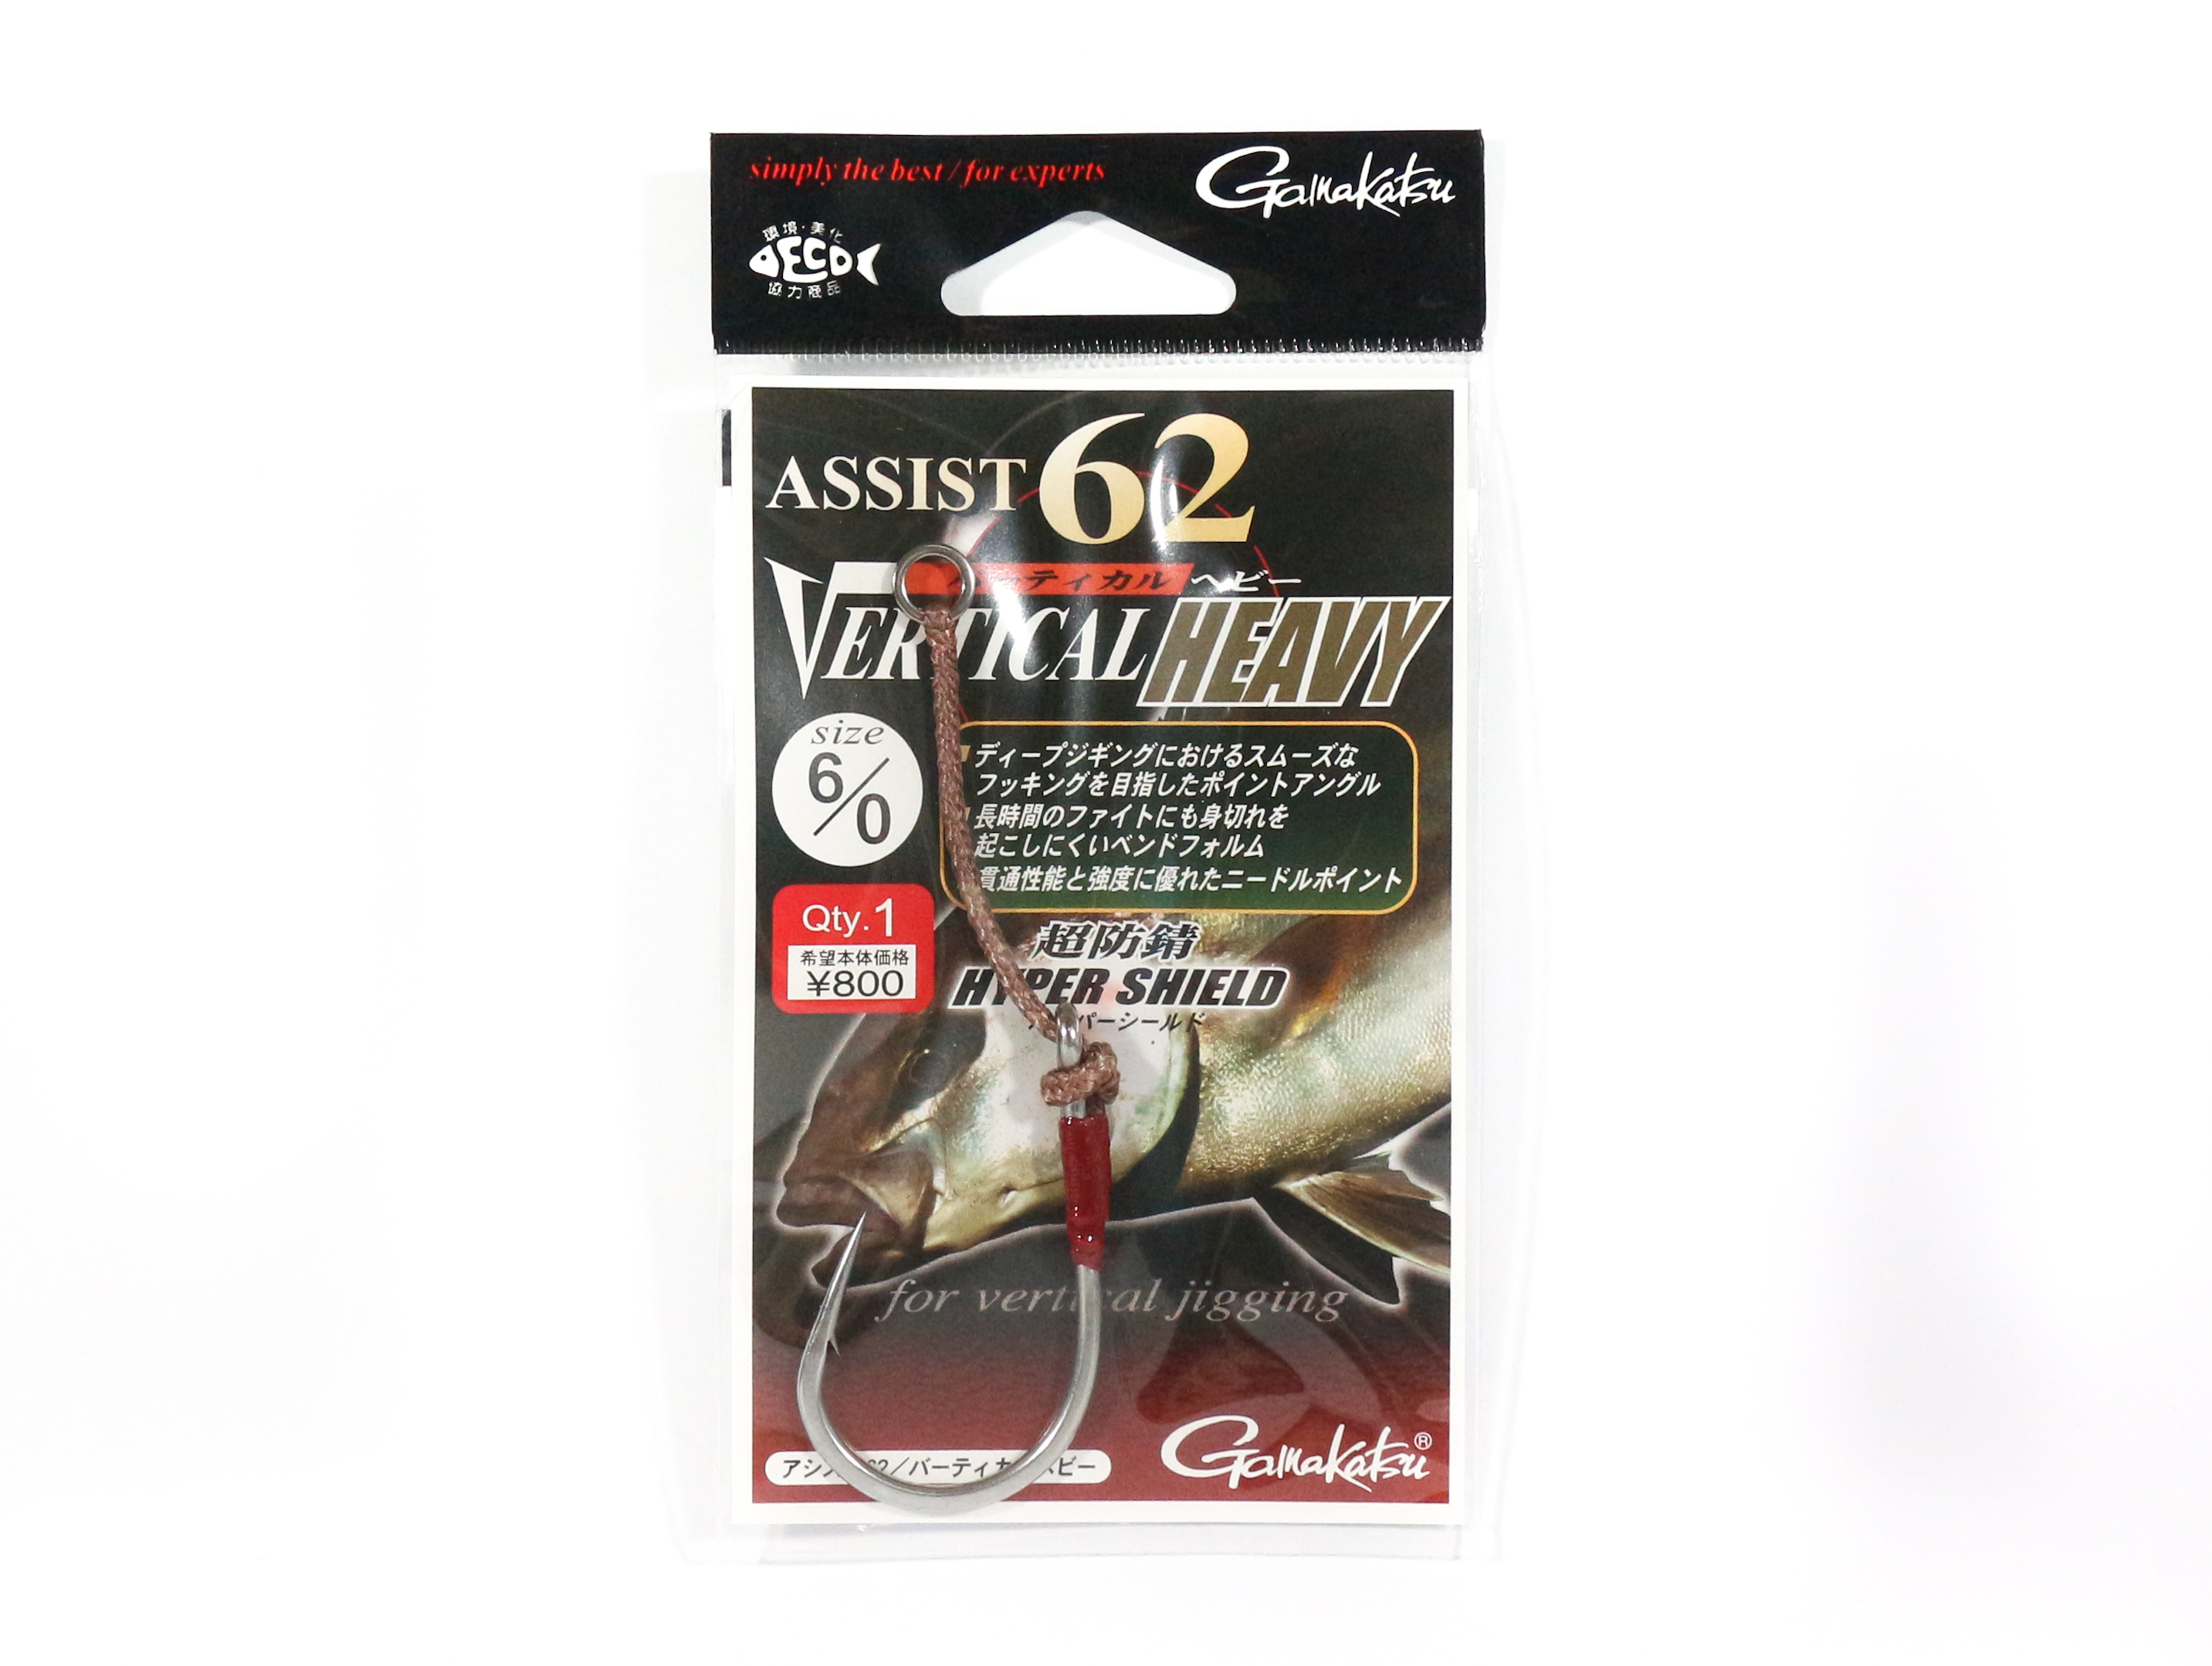 Sale Gamakatsu Assist 62 Vertical Heavy Jigging Hook Size 6/0 (8935)